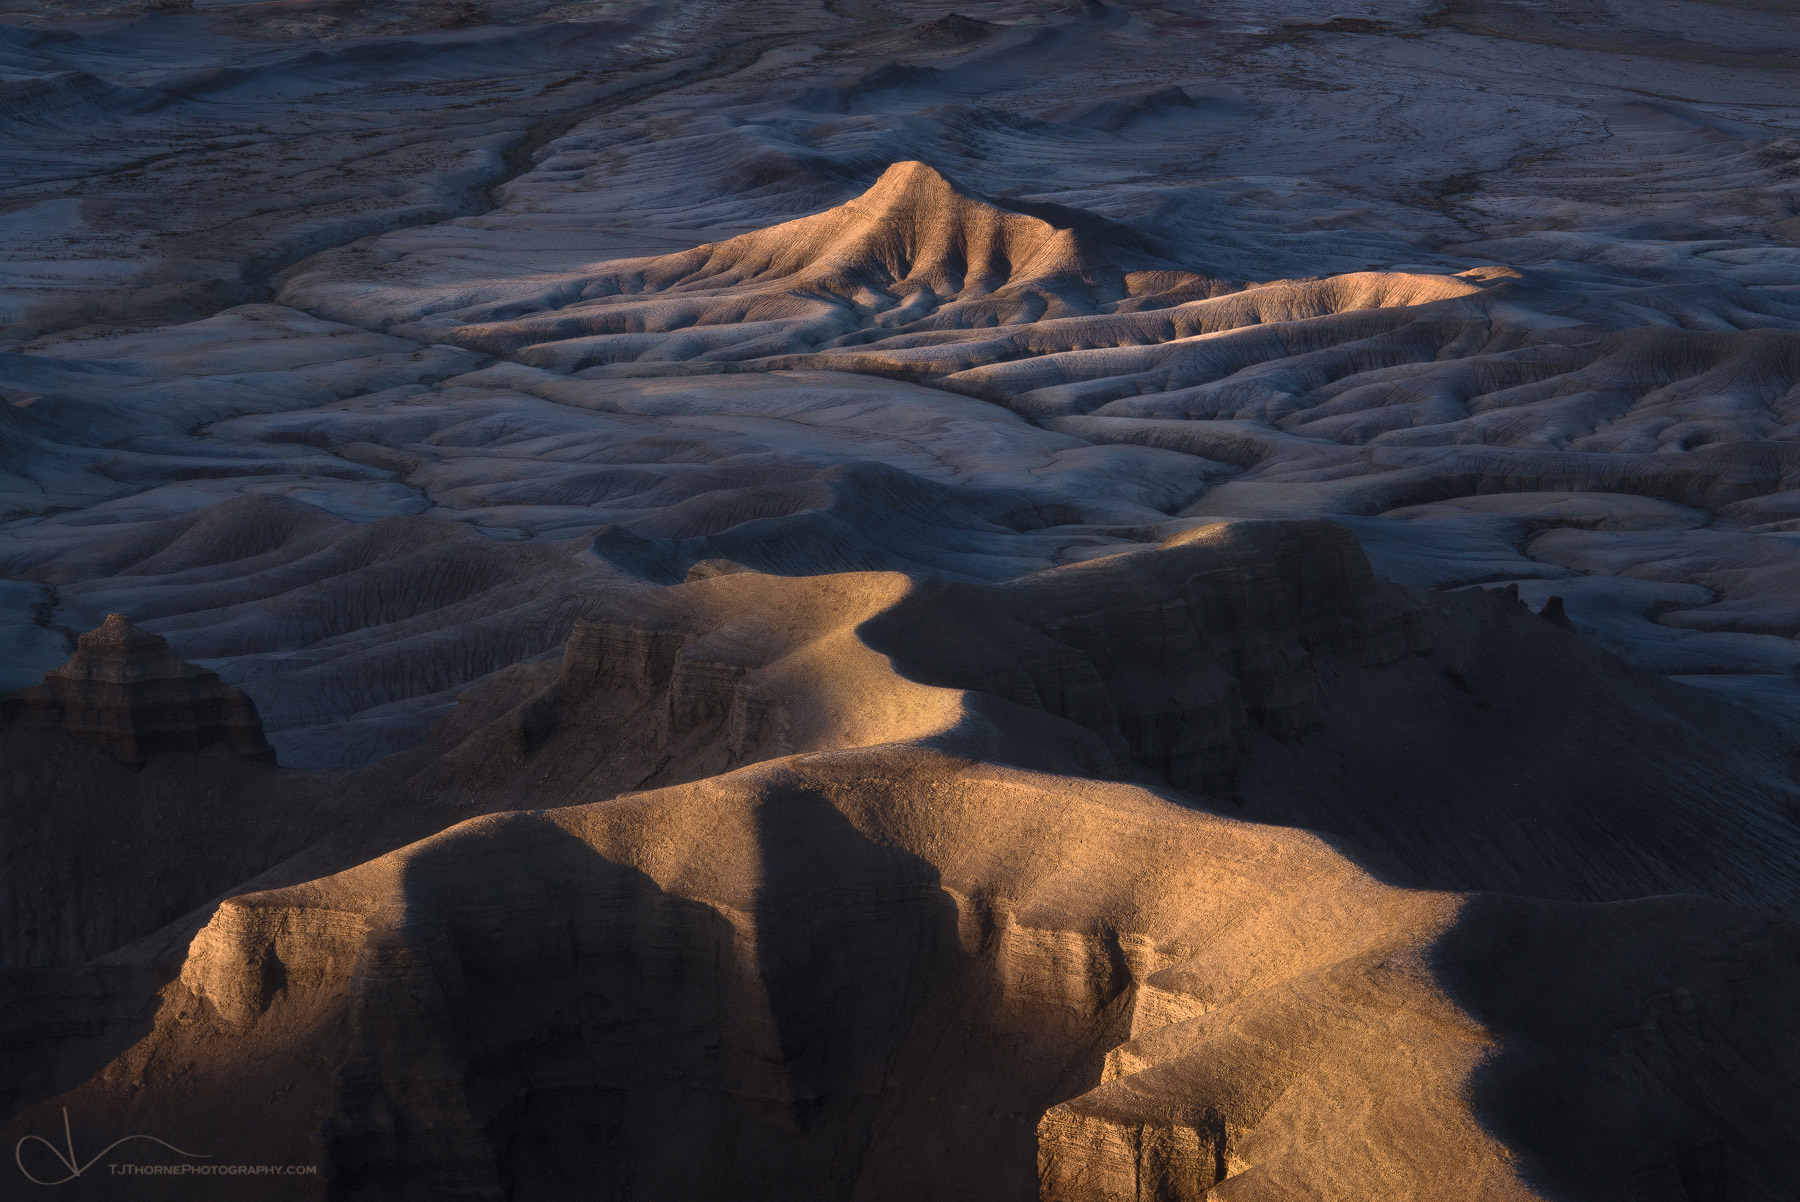 utah, badlands, sunset, warm, light, colorado plateau, desert, photo